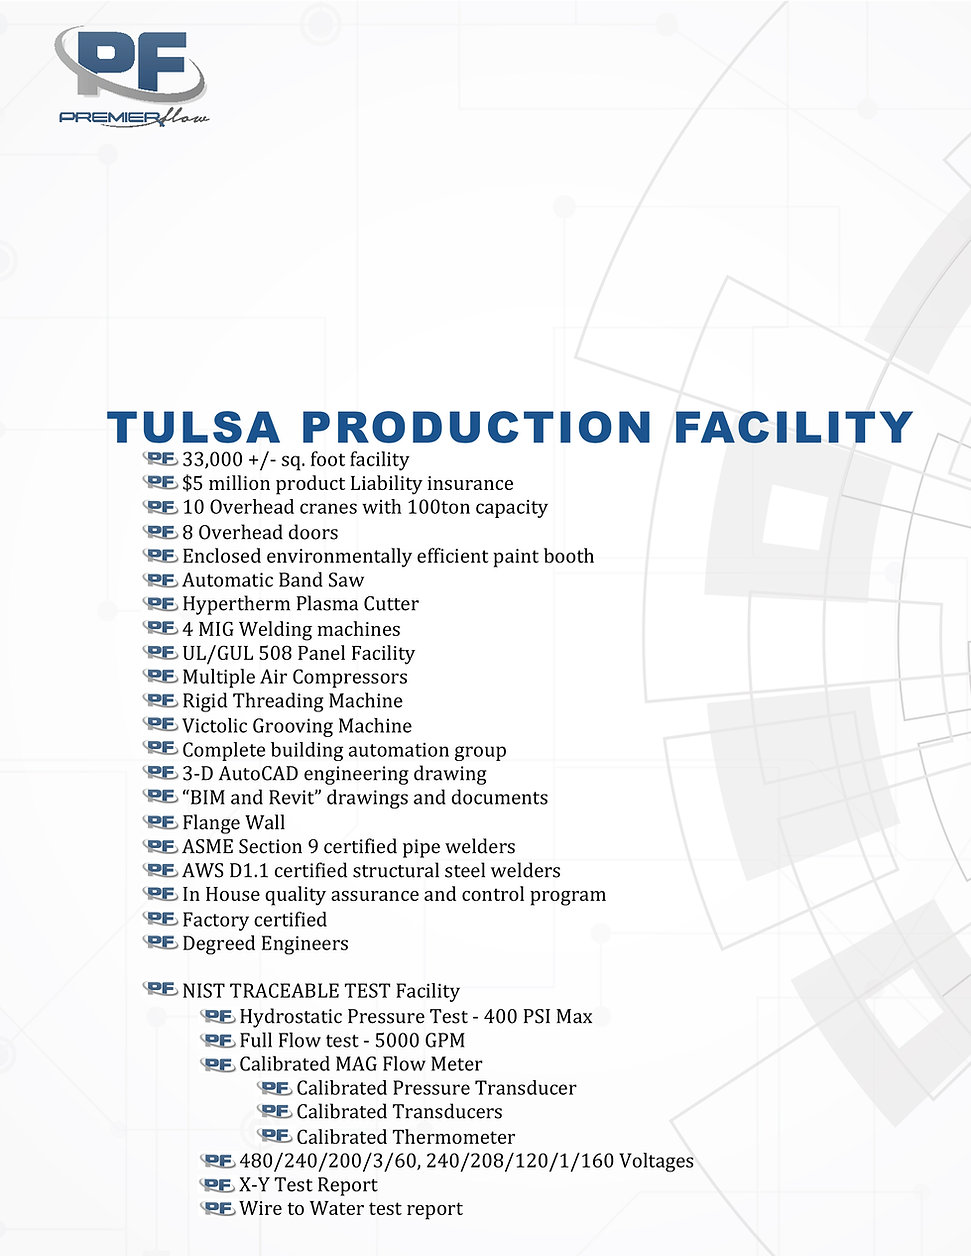 TULSA PRODUCTION FACILITY.jpg